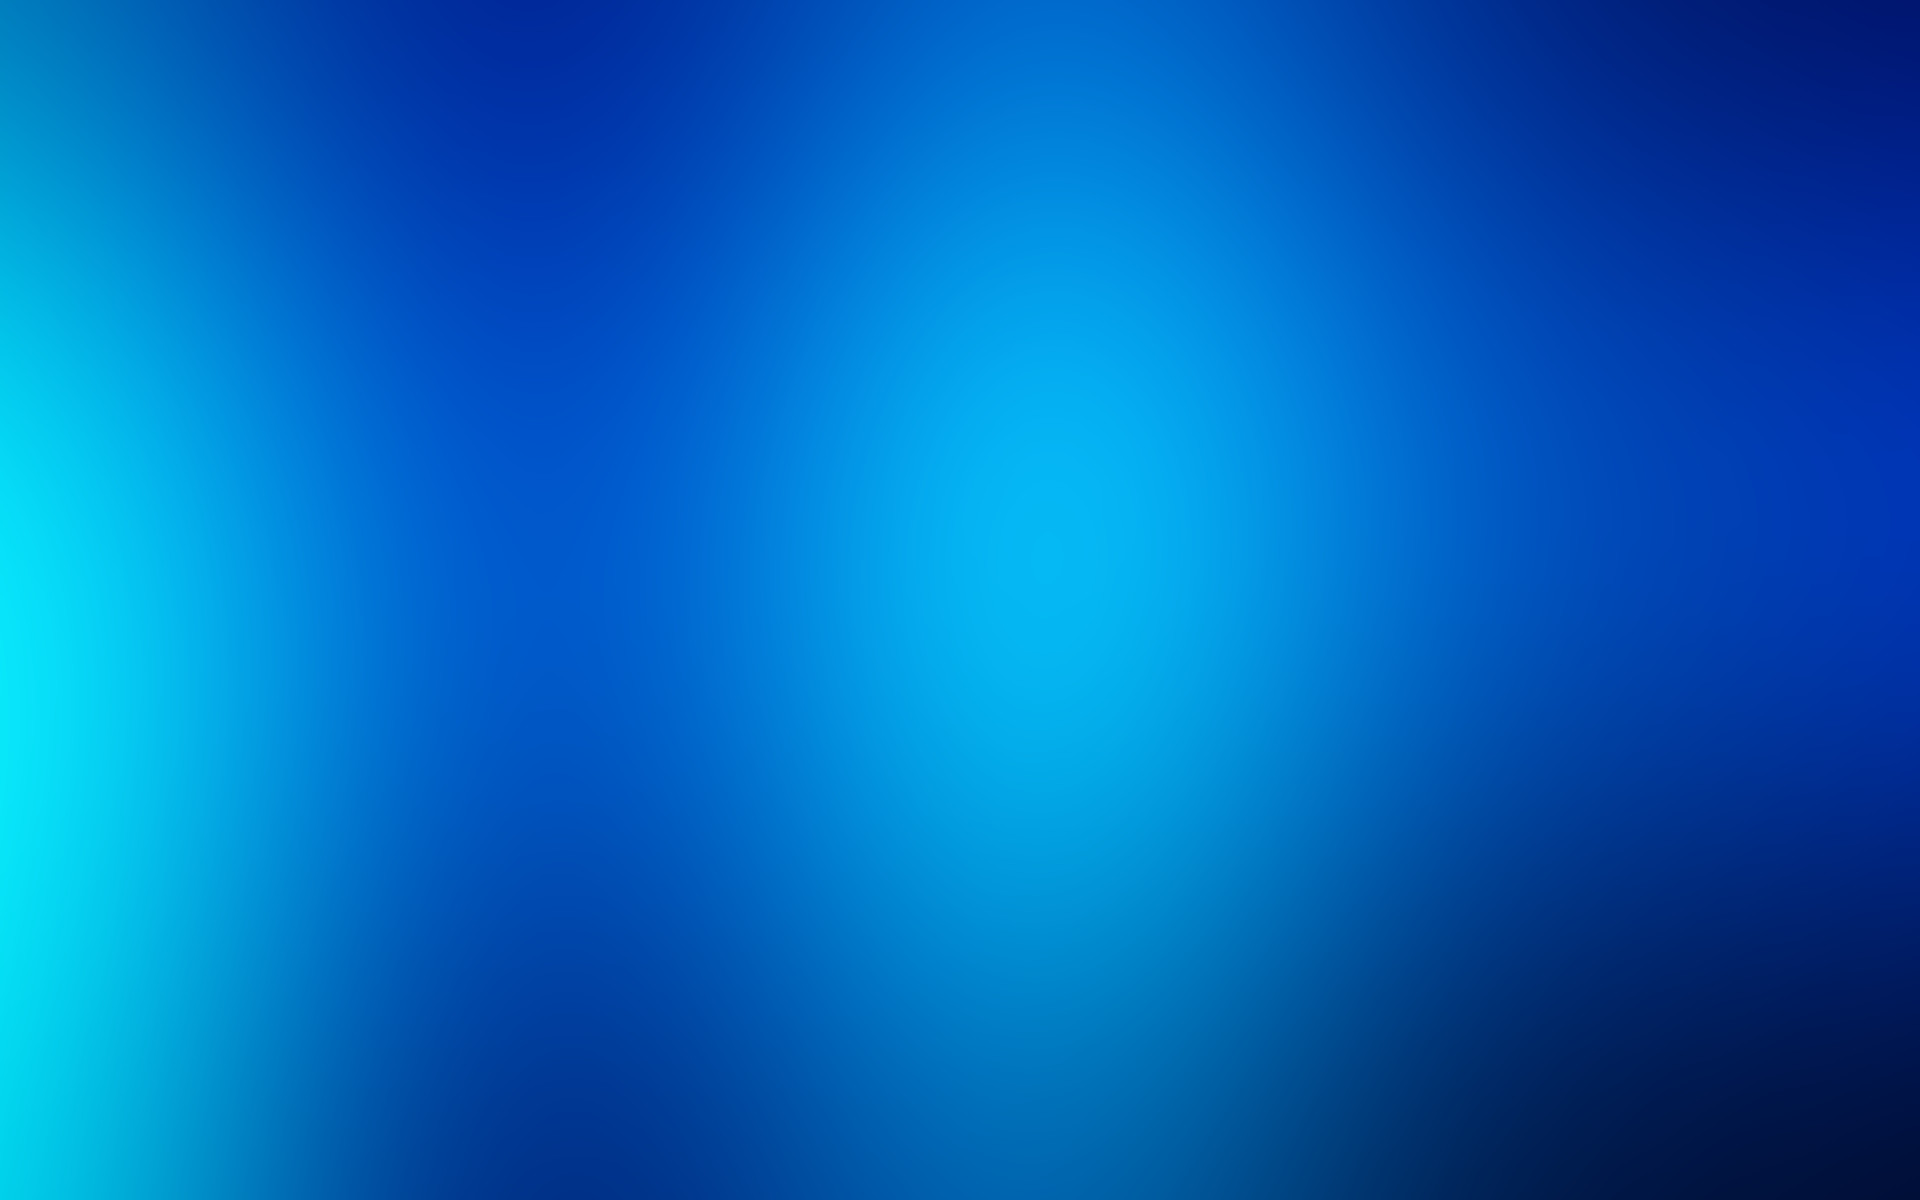 Plain Blue Background Wallpapers 74 Background Pictures